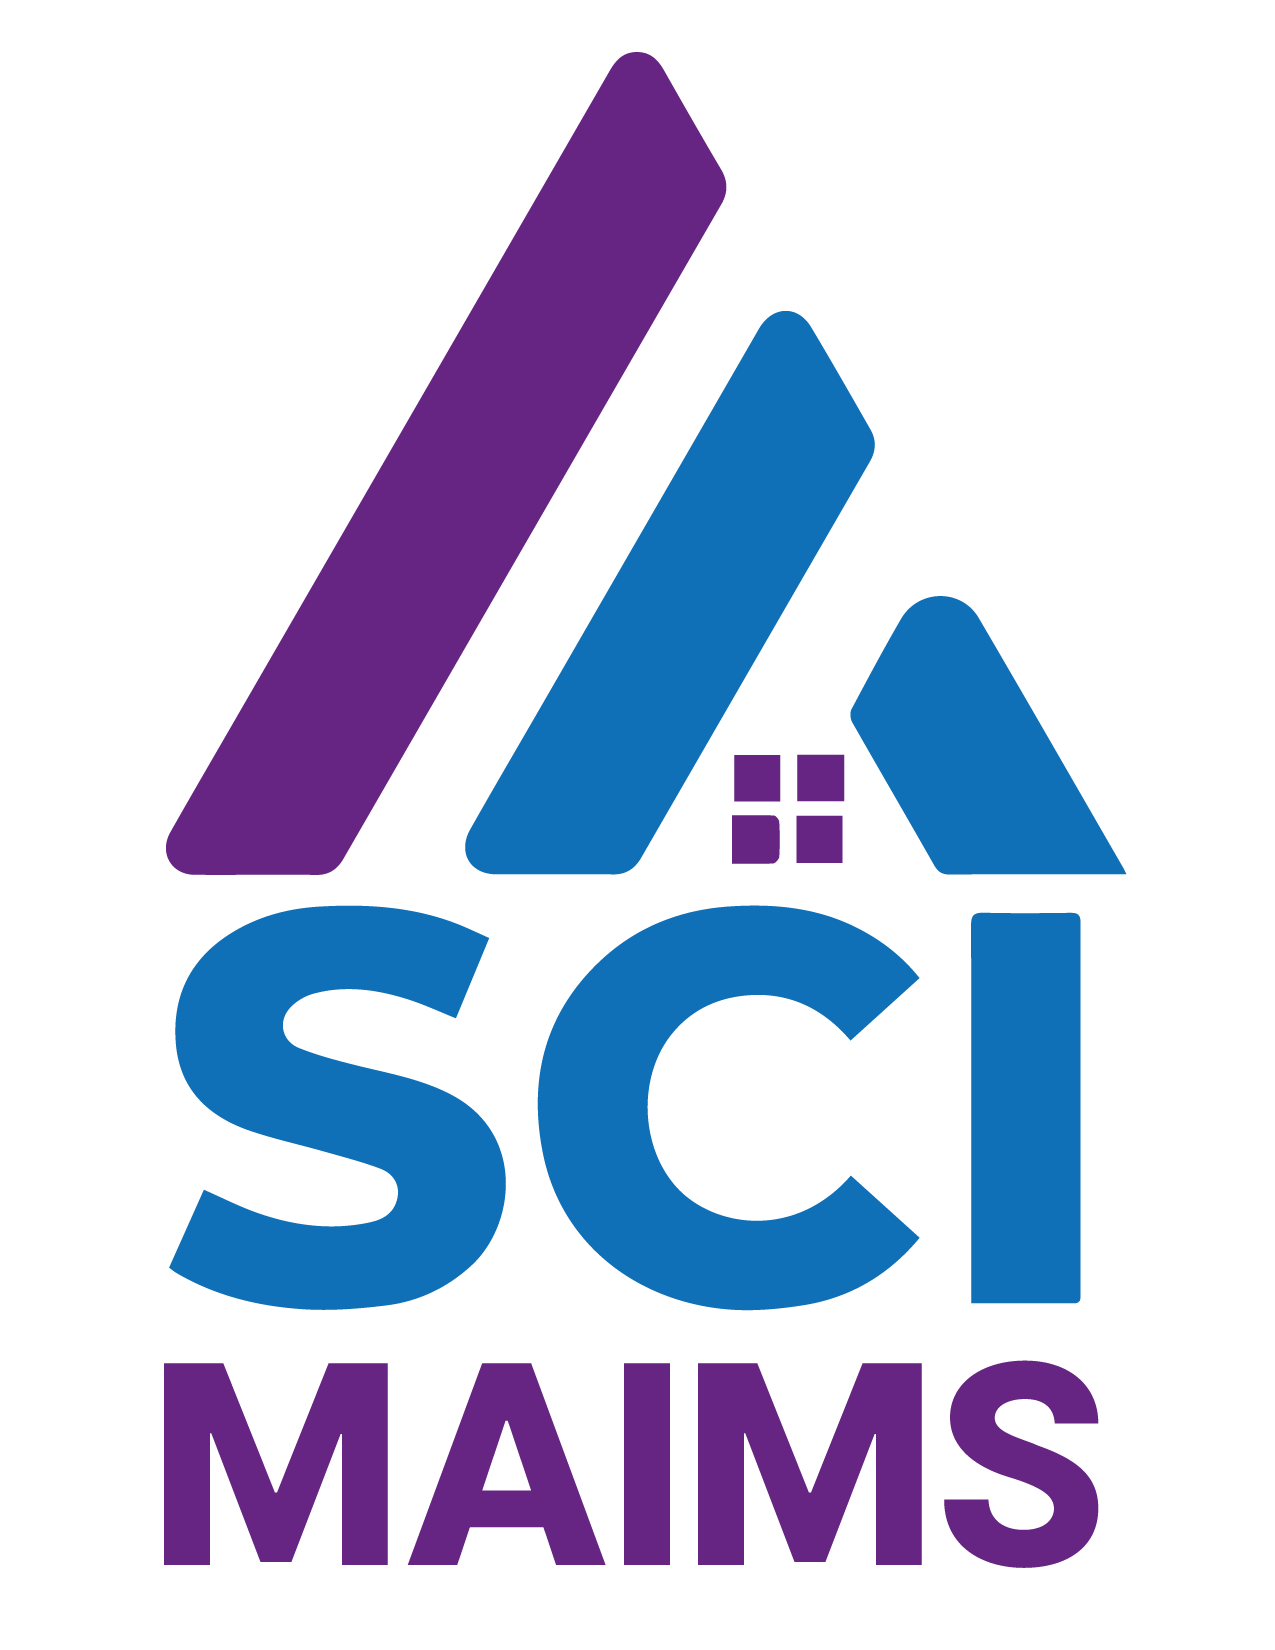 Sci Maims Immobilier